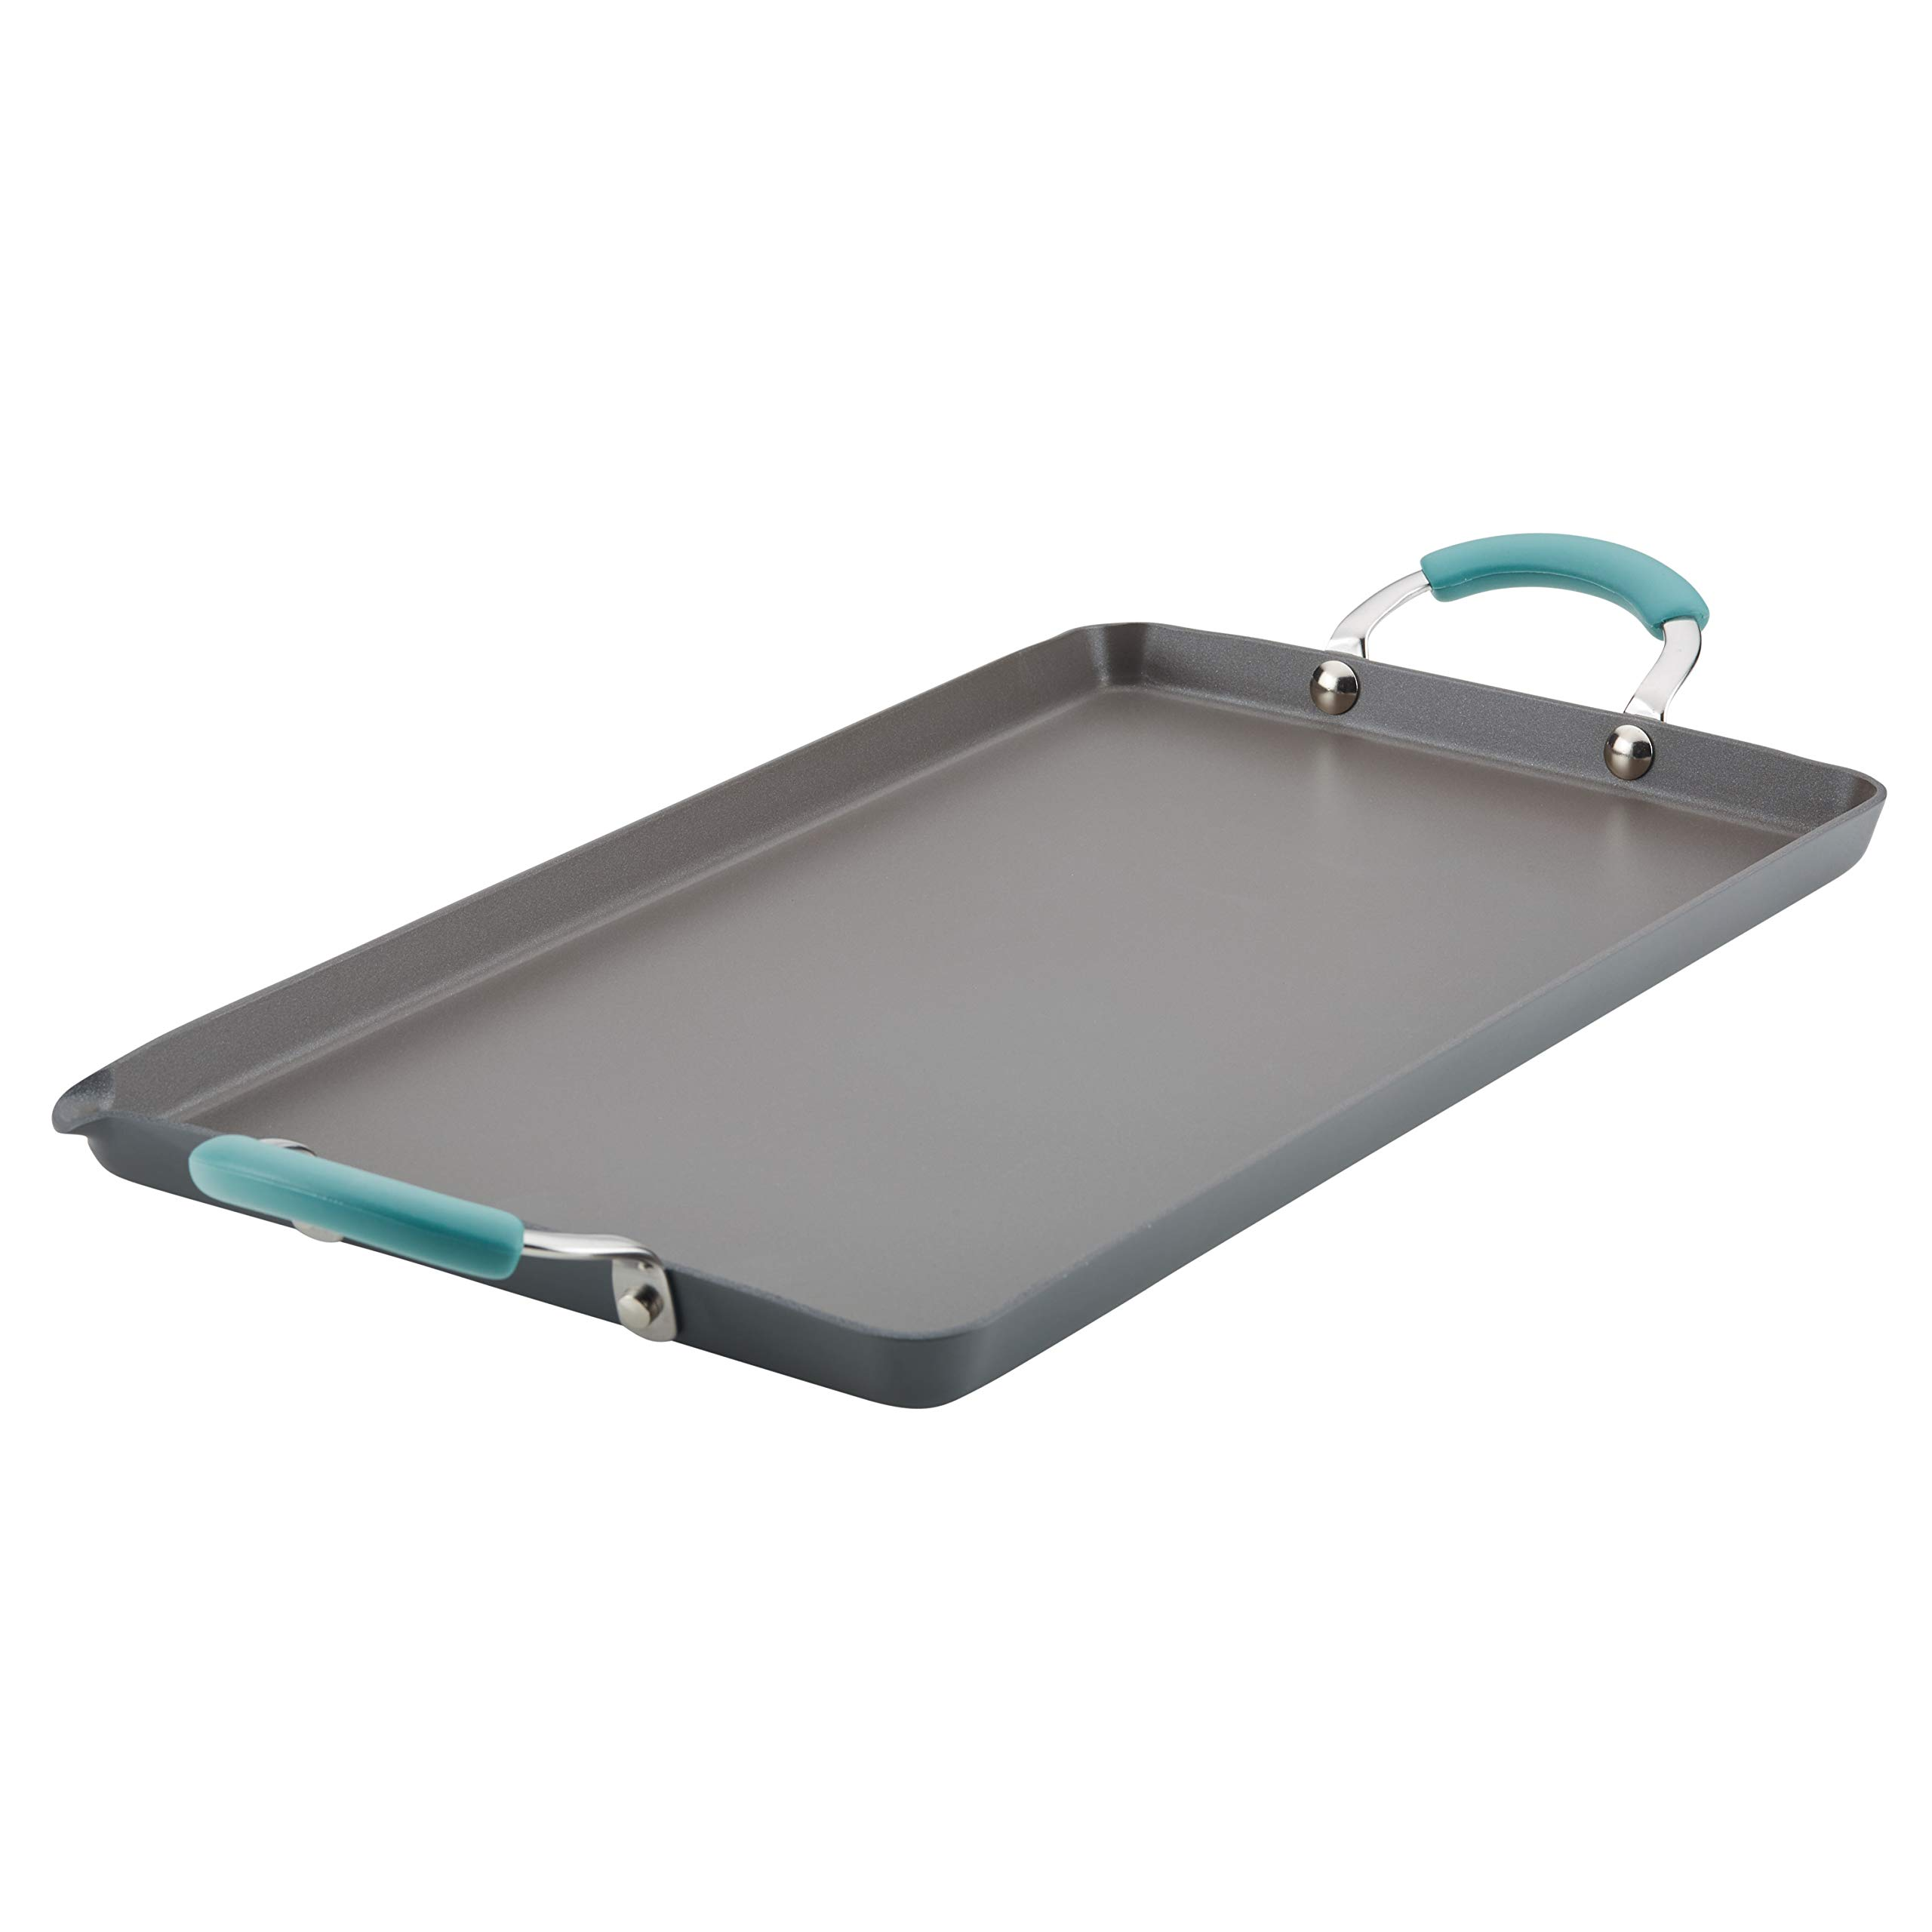 Rachael Ray Hard Anodized Nonstick 18-Inch by 10-Inch Double Burner Grill with Agave Blue Handles by Rachael Ray